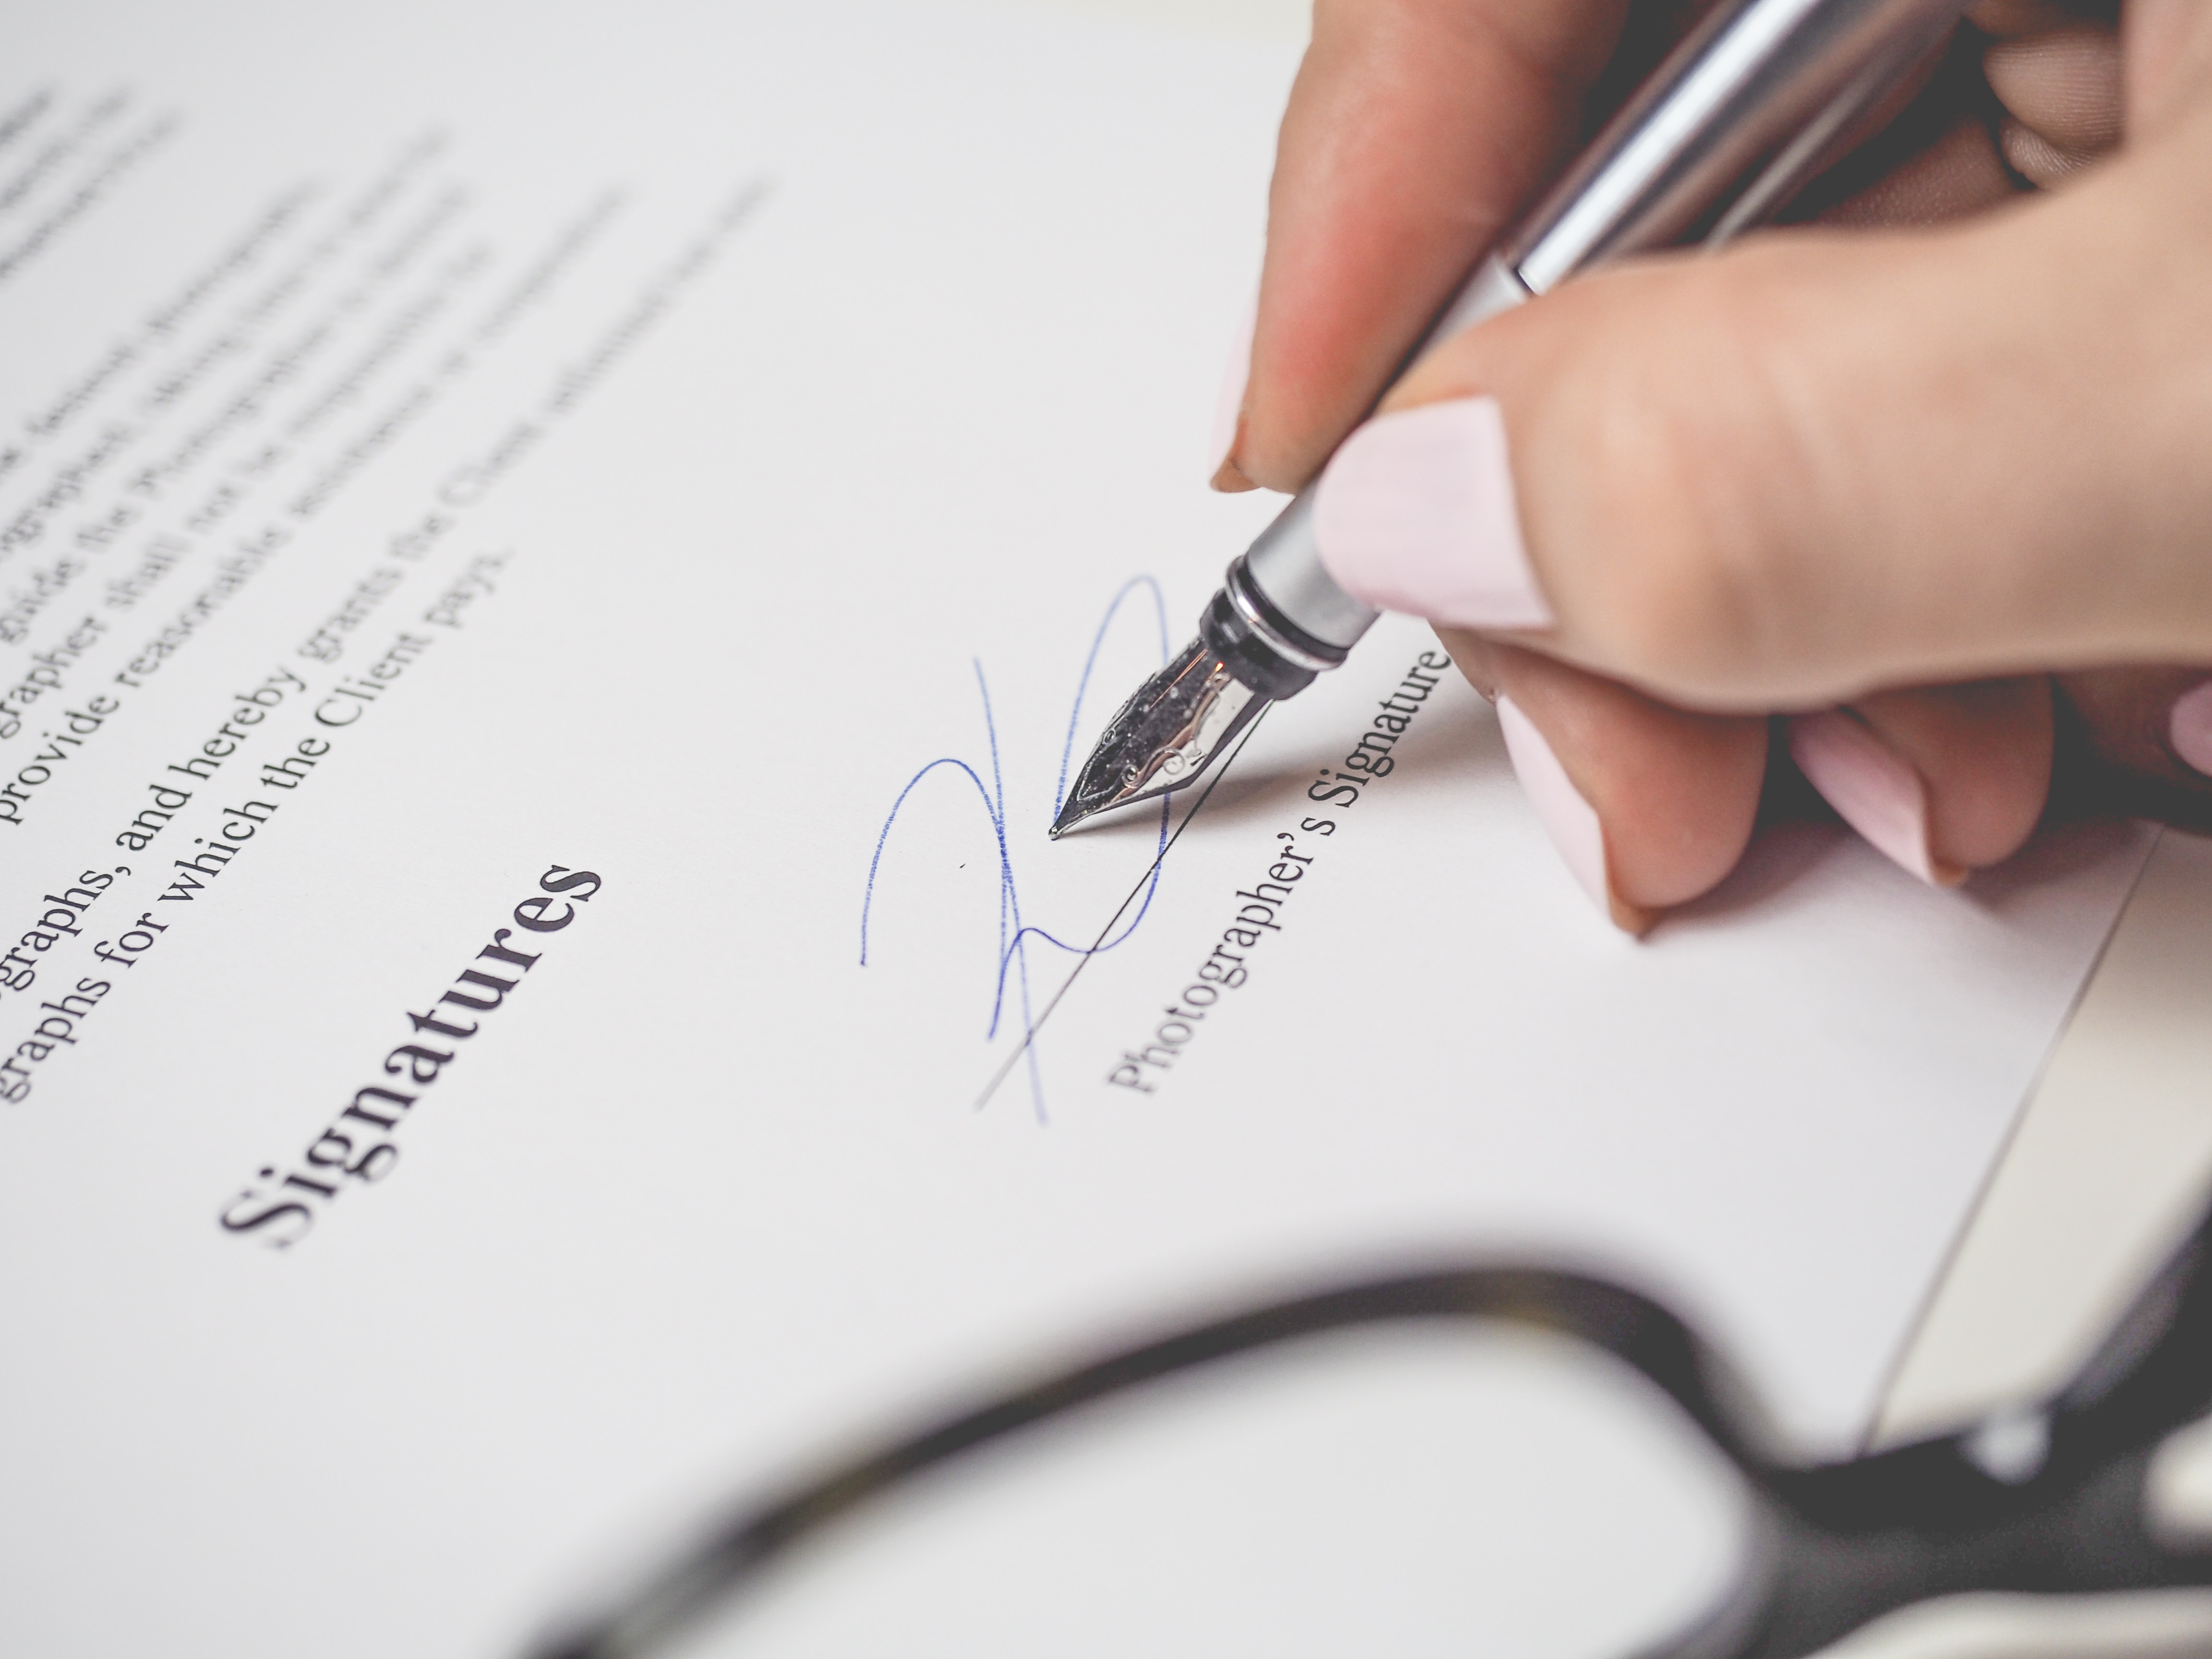 person-holding-silver-pen-signing-photographers-signature-175045